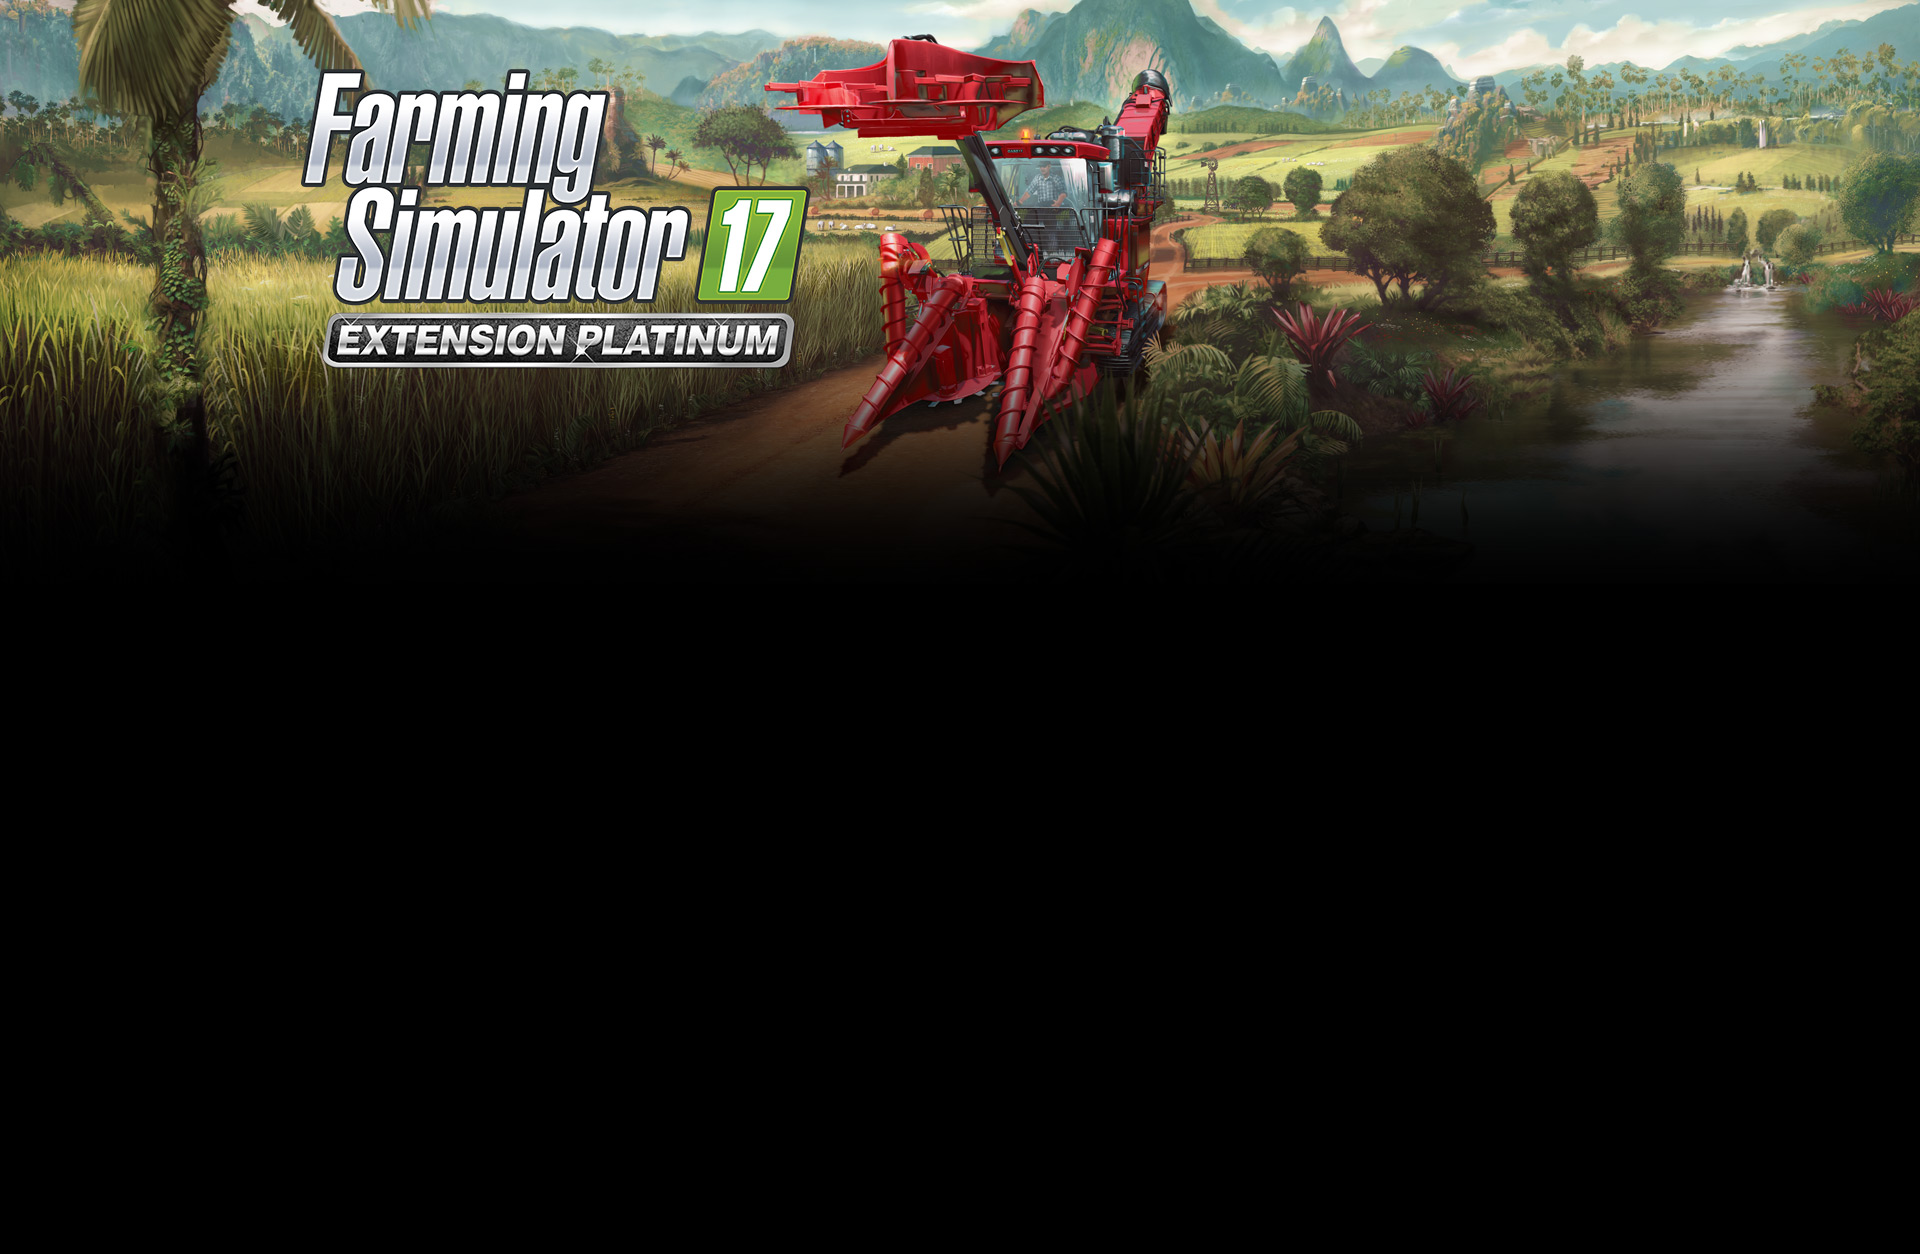 Farming Simulator 17 - Extension Platinum